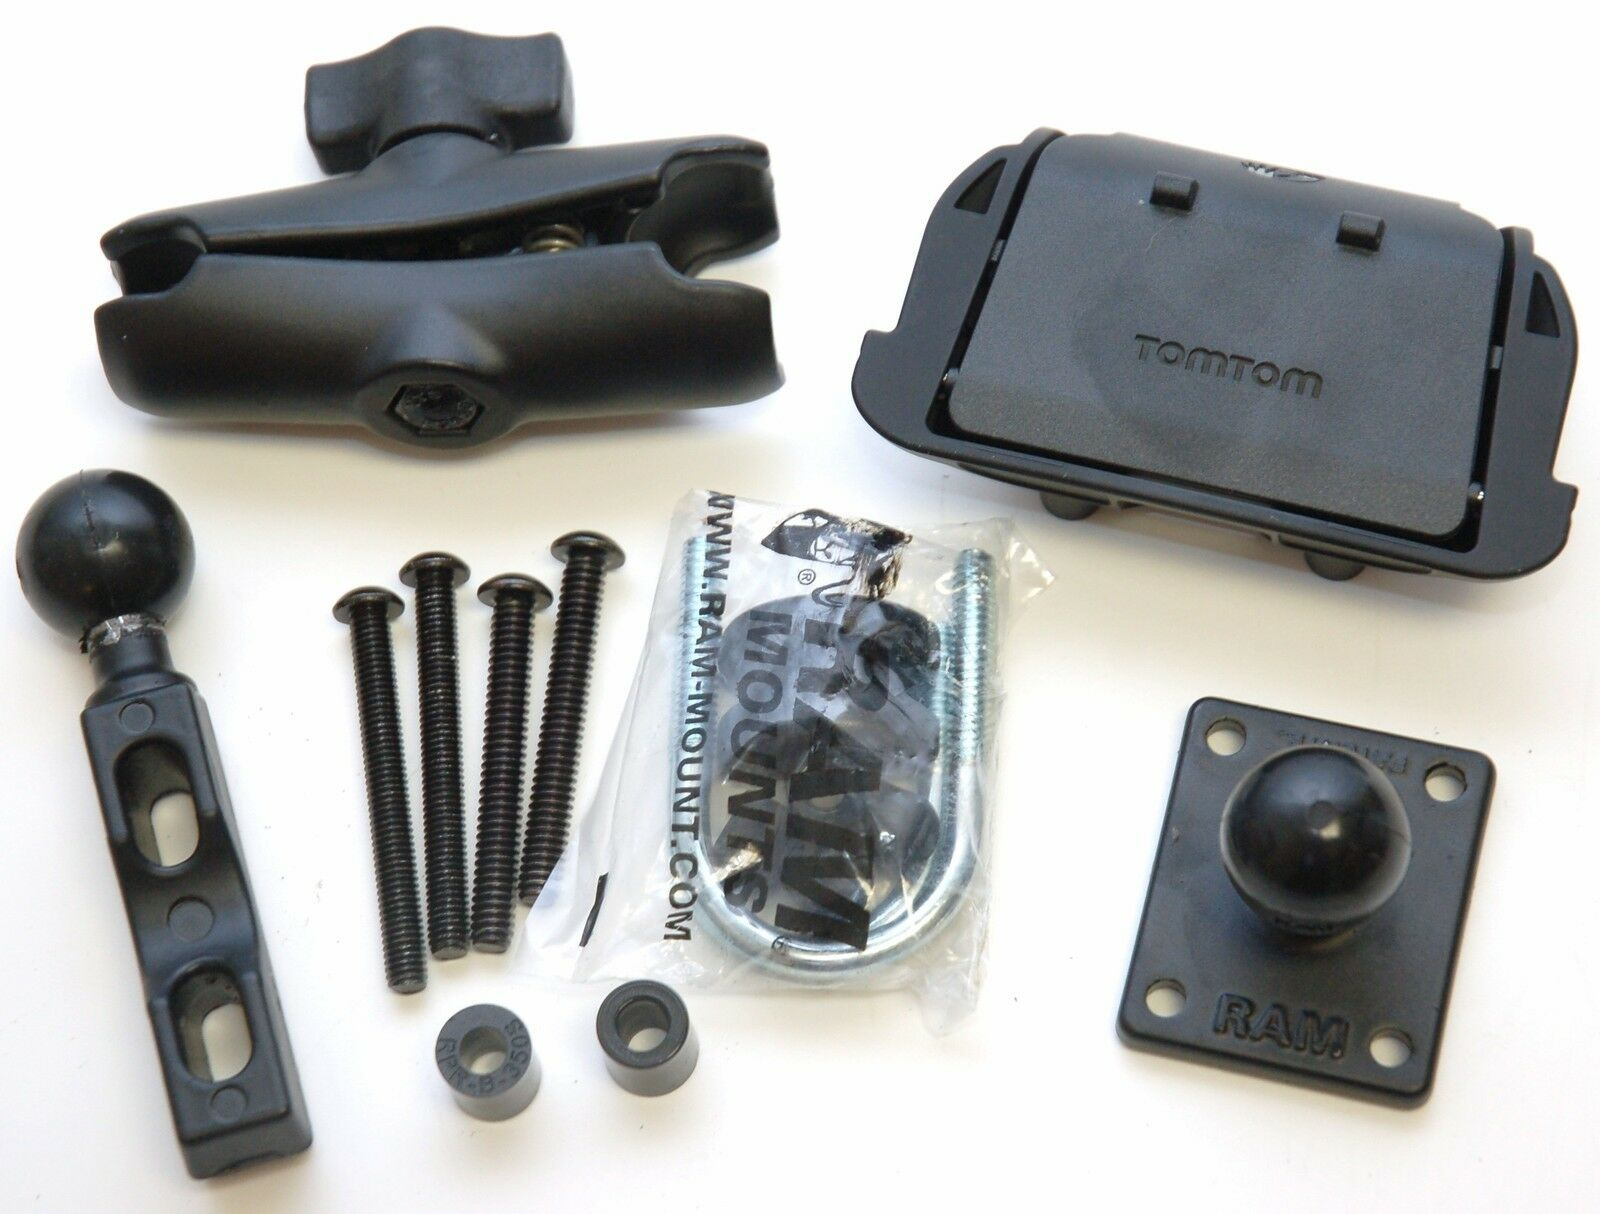 tomtom rider 2 motorcycle gps ram mount cradle dock handlebar 2nd kit ebay. Black Bedroom Furniture Sets. Home Design Ideas